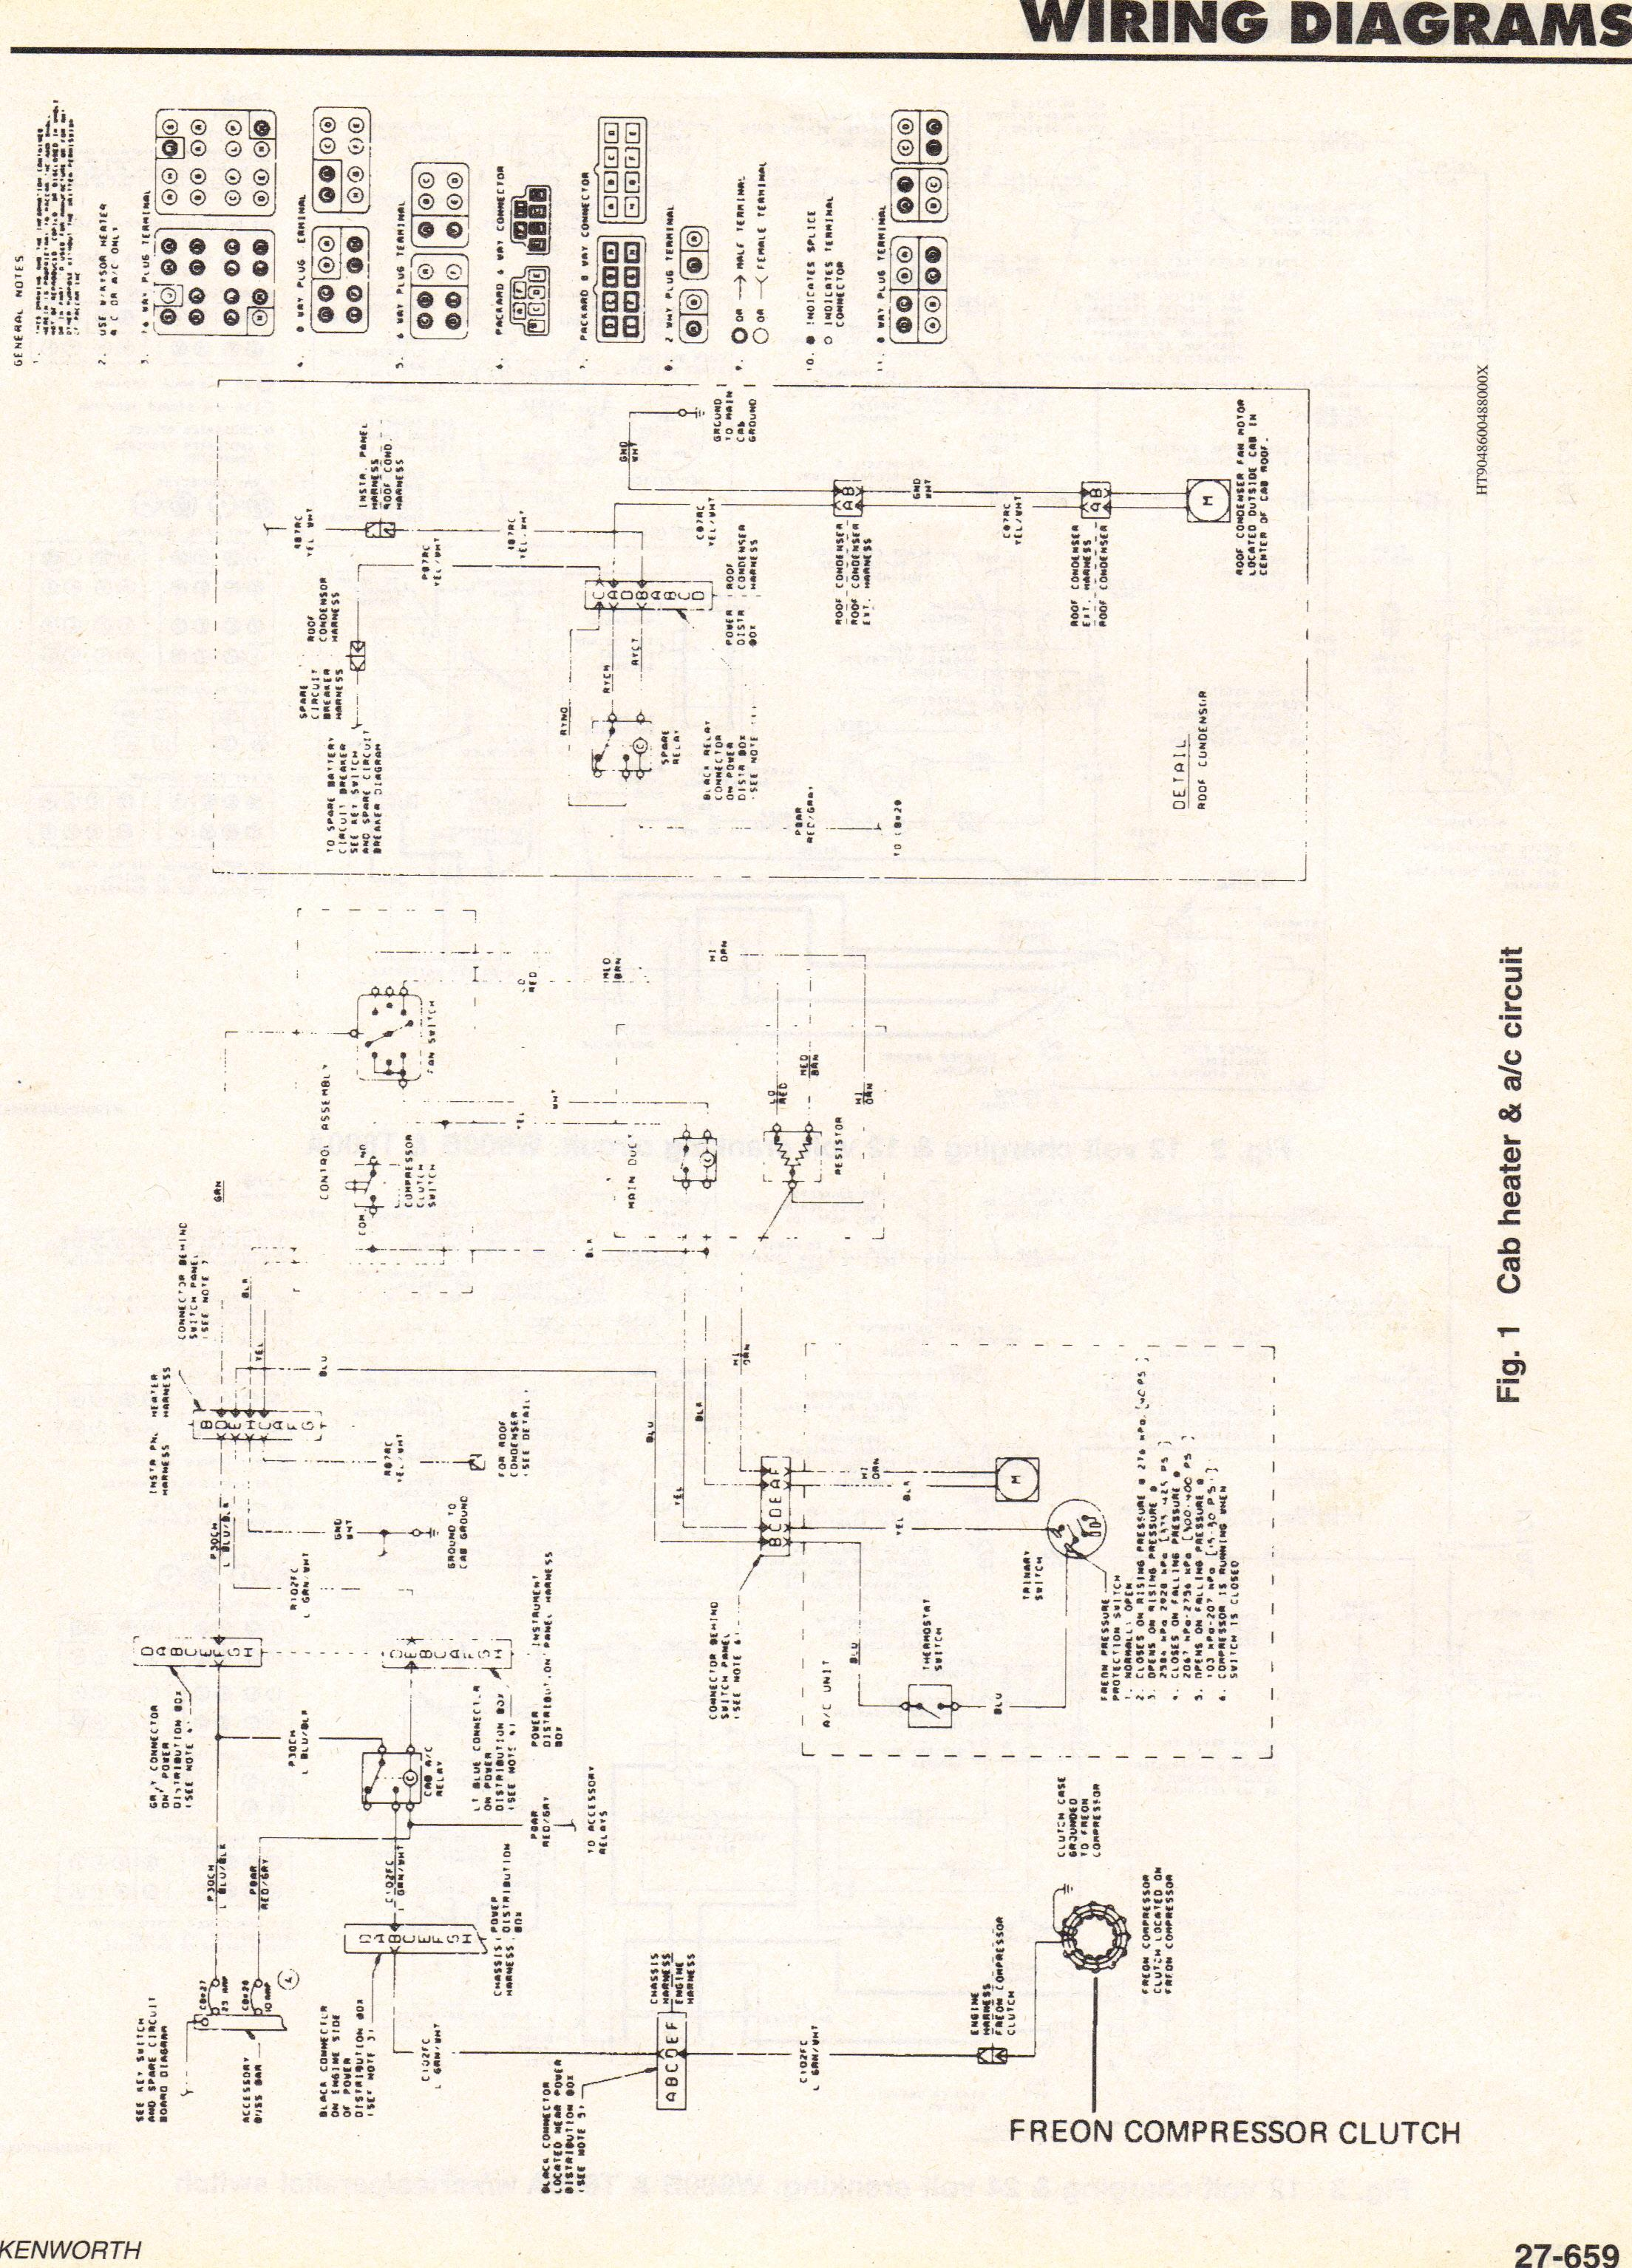 2010 kenworth t800 wiring schematic wiring diagrams i am looking at a 1988 kenworth t800 we are having problems freightliner headlight wiring diagram